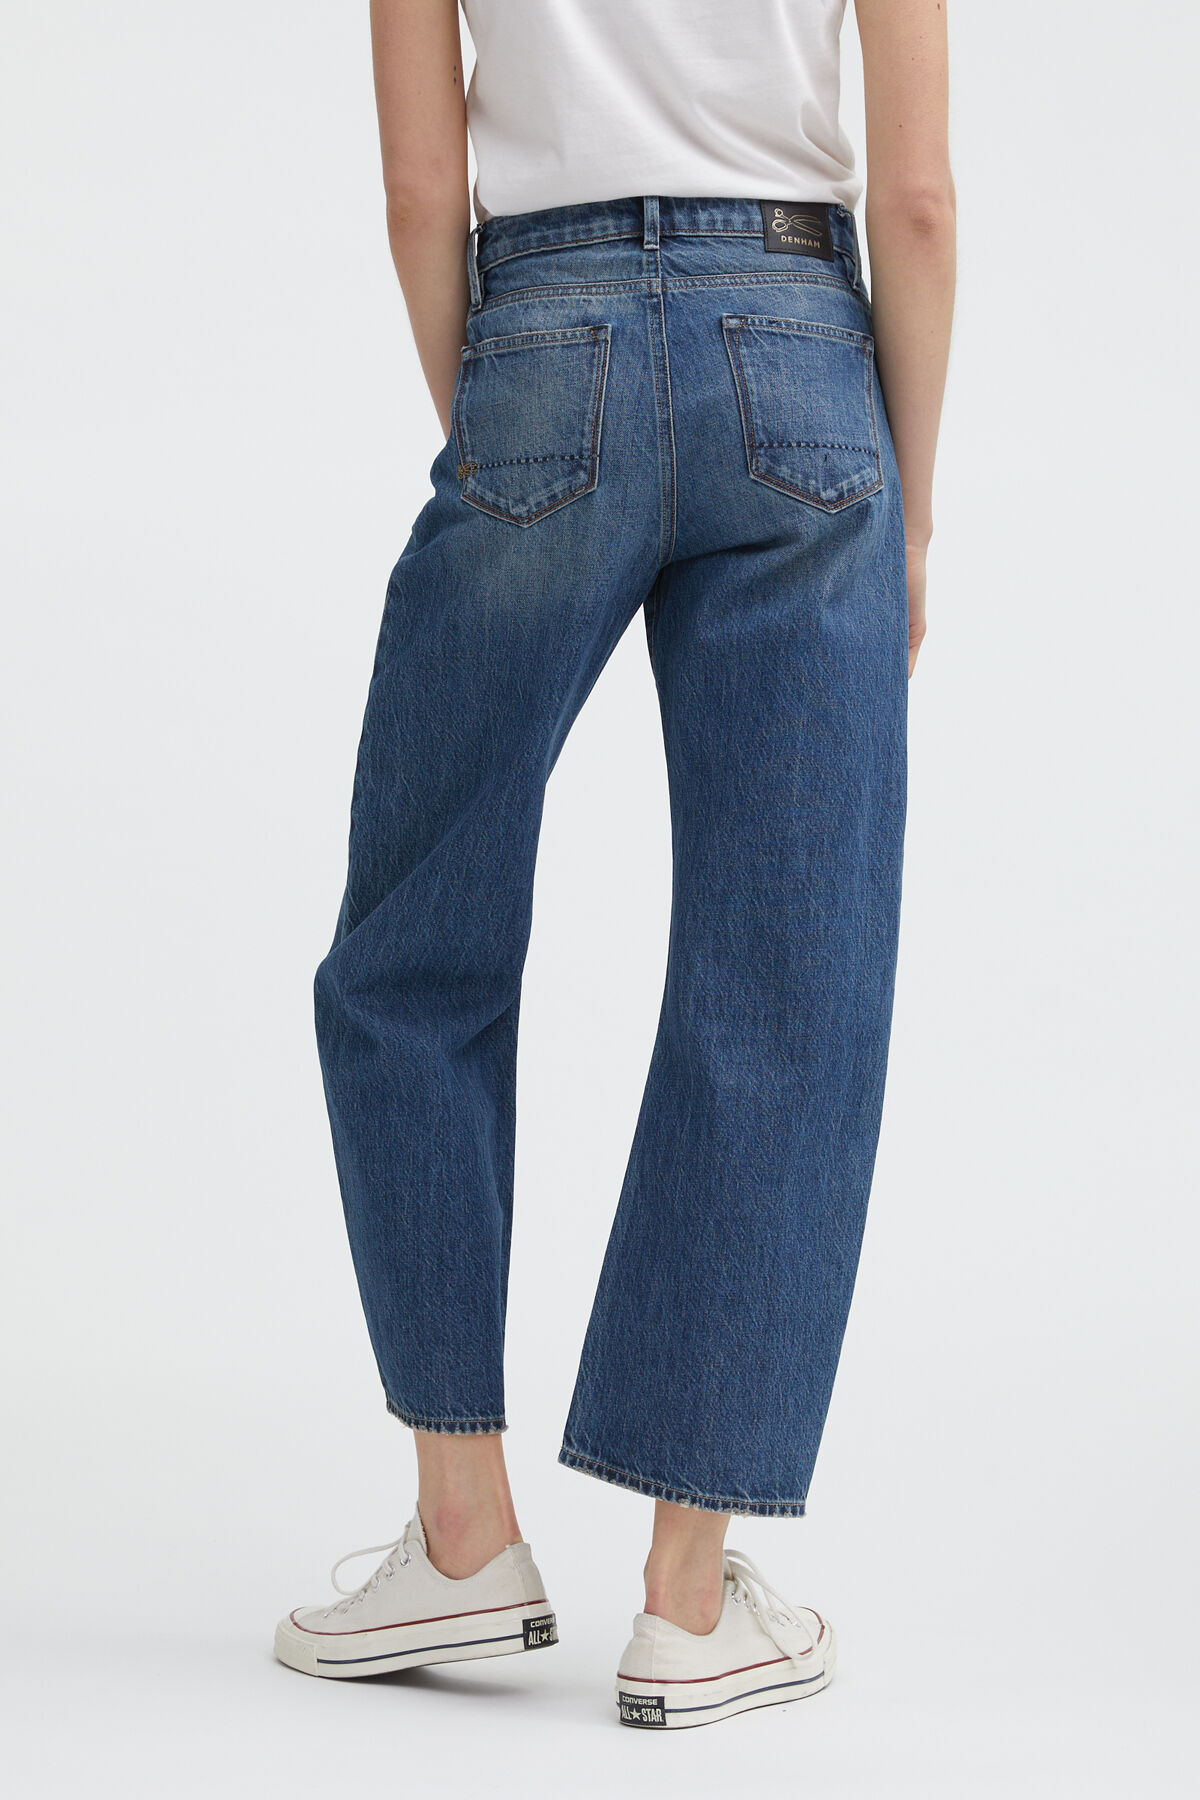 BARDOT WIDE Organic Cotton Denim - High-rise, Loose Fit